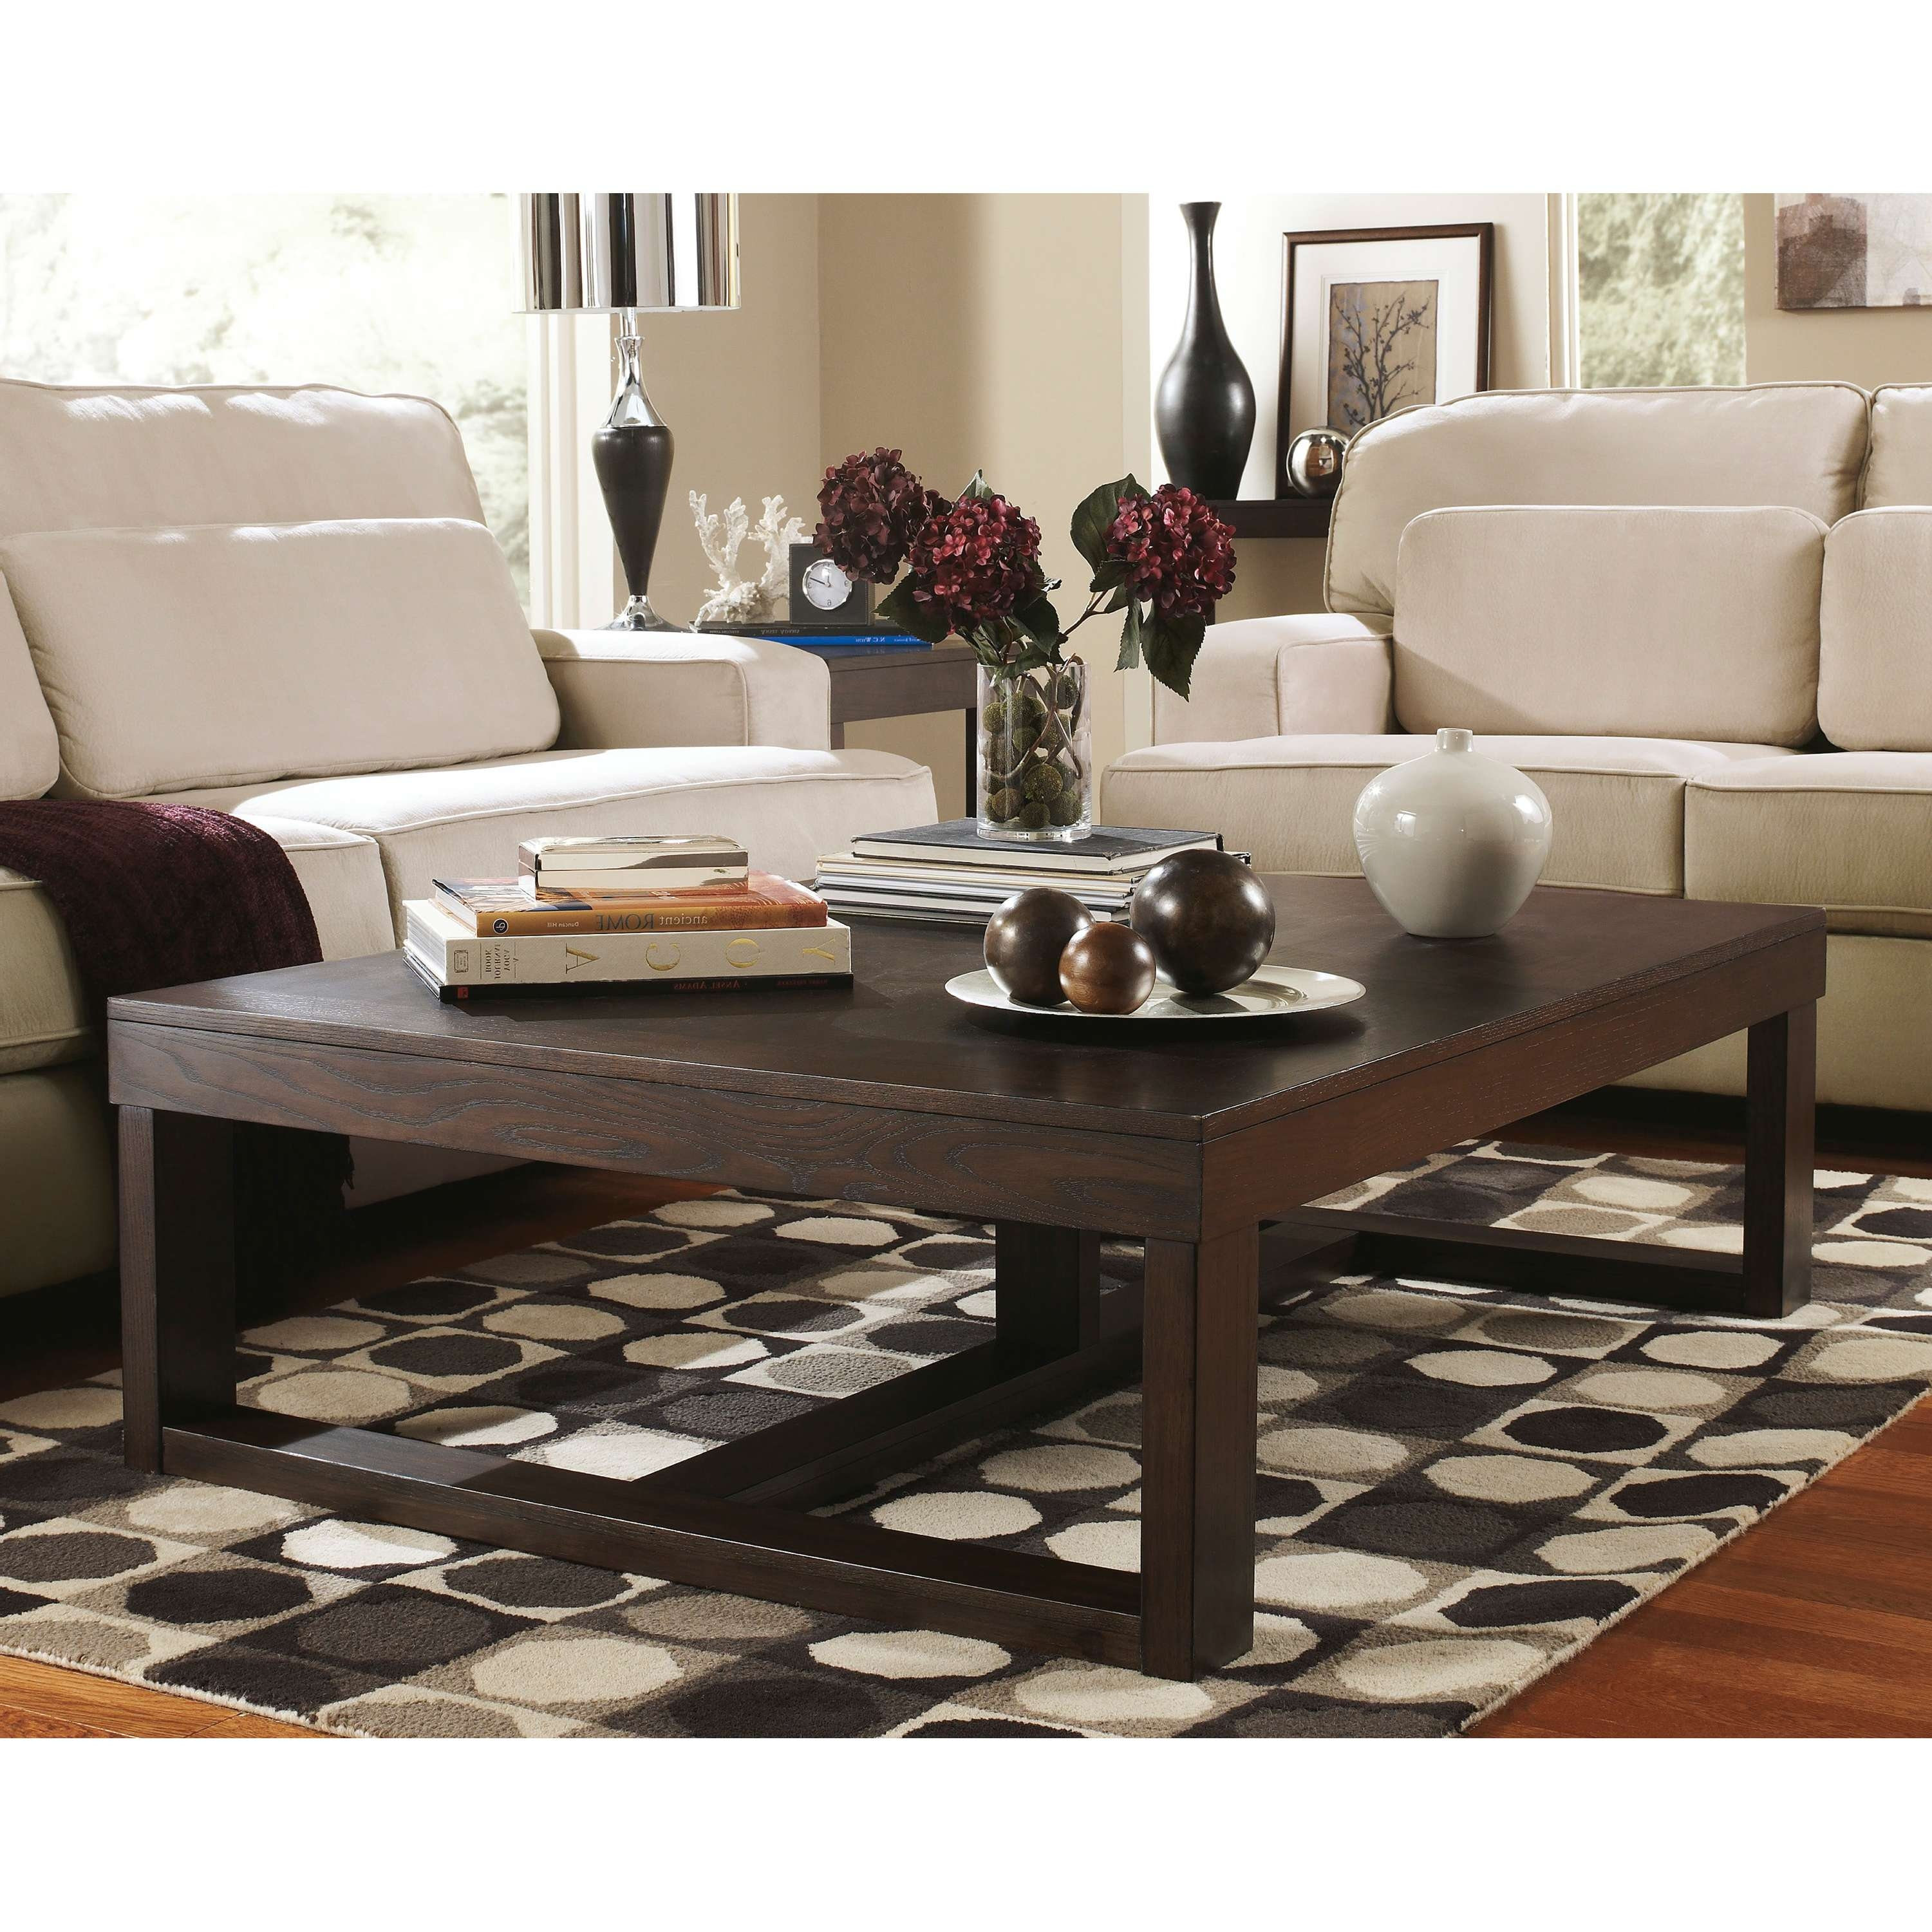 Coffee Table : How Big Is Coffee Table Ottoman Lotshow Standard Pertaining To Popular Big Coffee Tables (View 4 of 20)